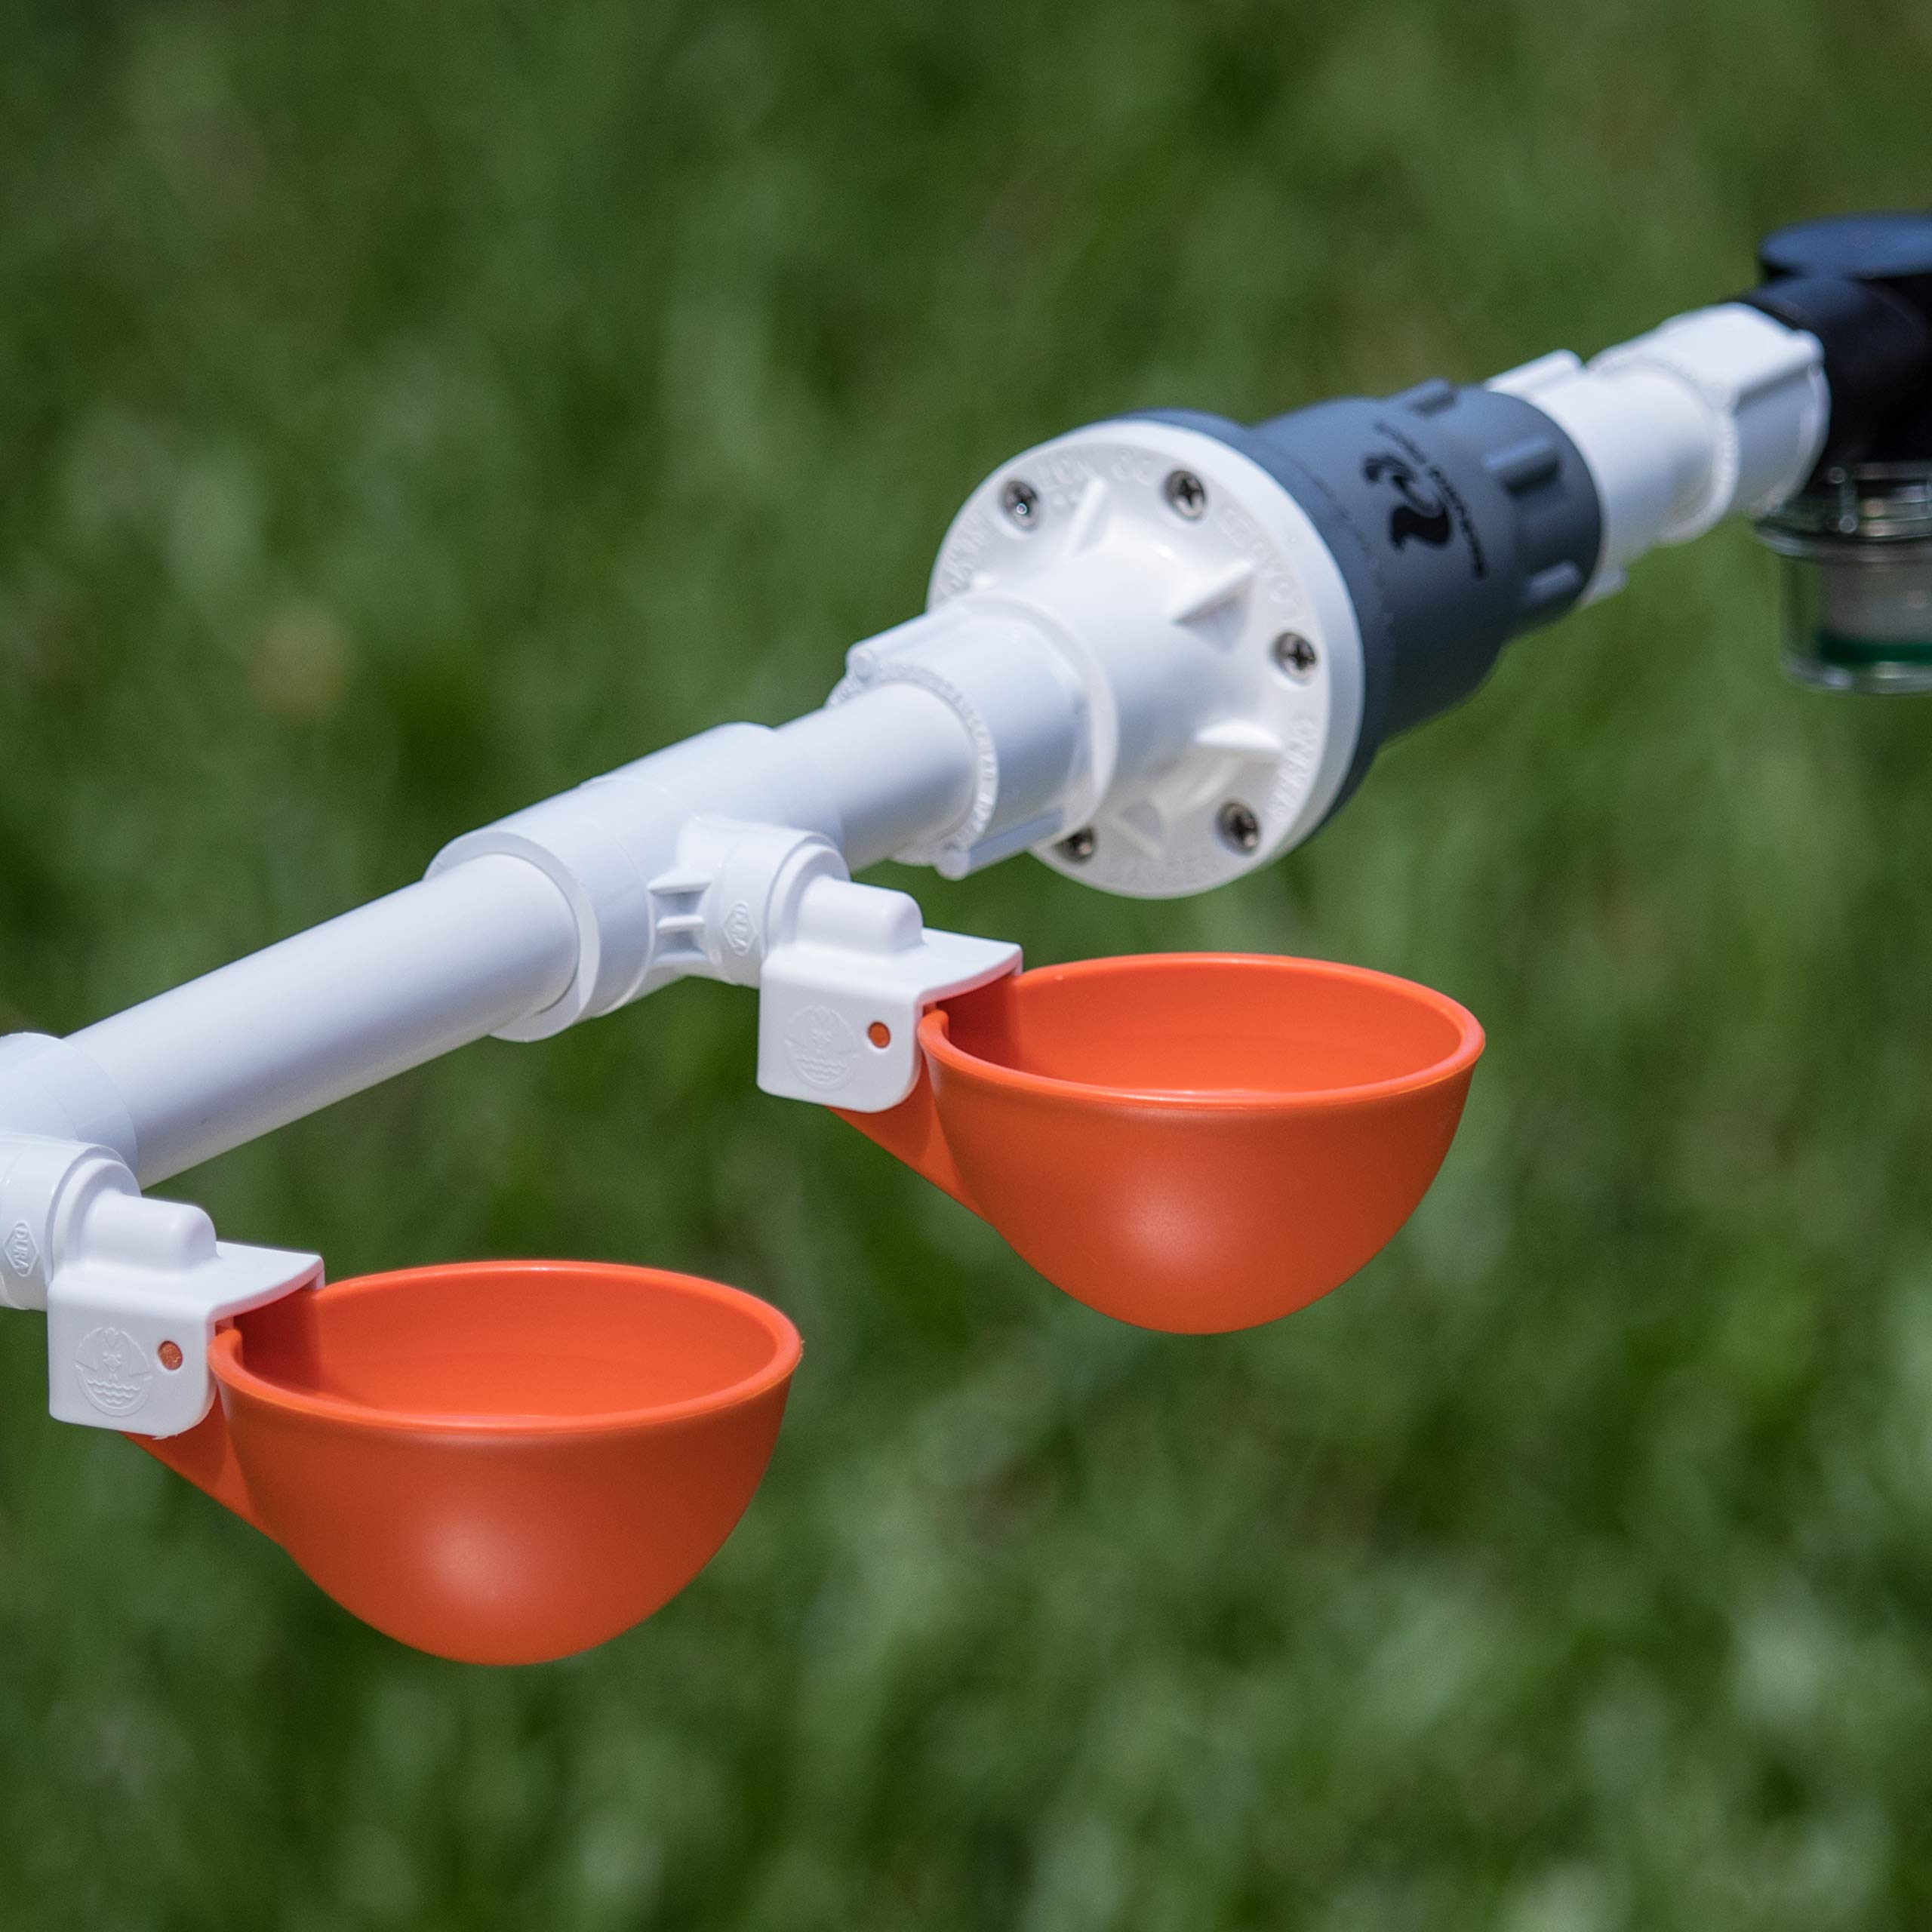 Backyard Flock 4 Cup Oasis Poultry Watering System for Household Water Lines. Automatic Chicken Waterer Kit - Orange by Backyard Flock